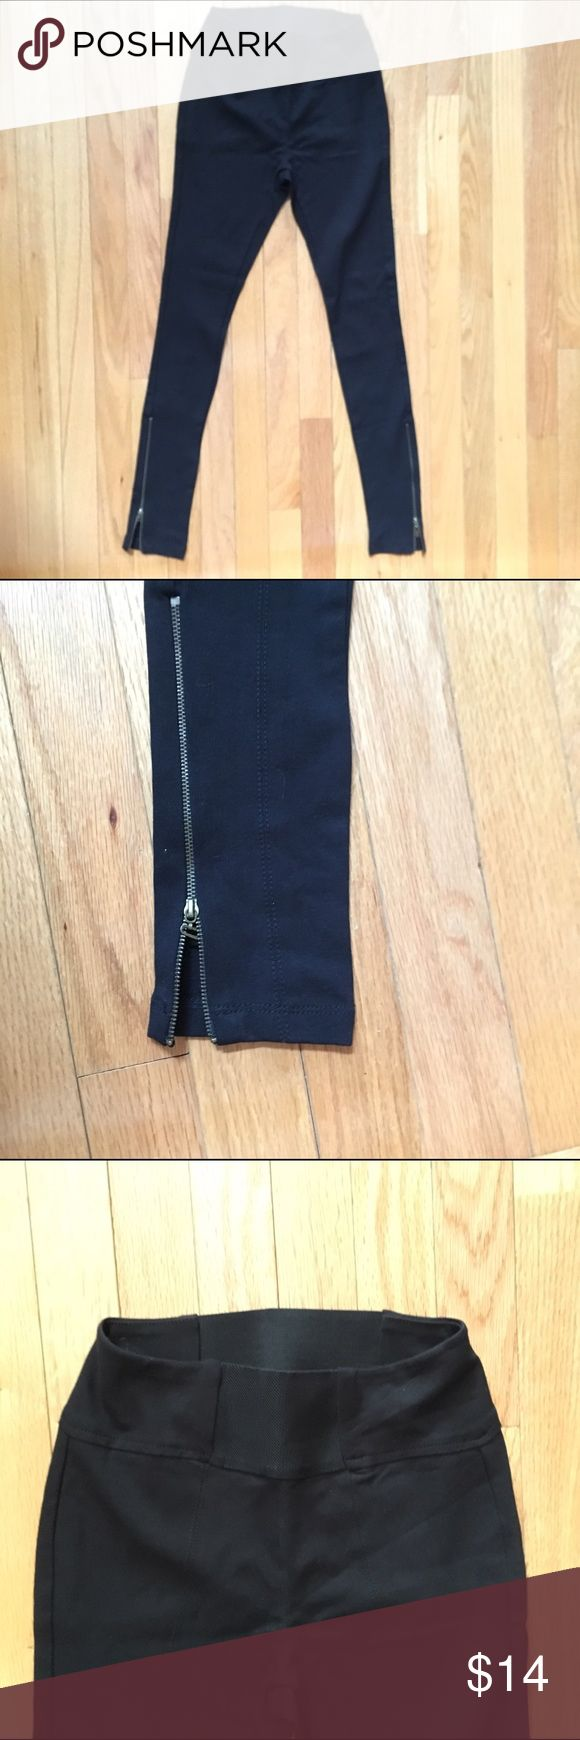 nwot high waisted thick black leggings ankle zip S Flattering leggings made of thick material these keep everything in place. Cute ankle zipper detail. Size small  Brand Mine Pants Leggings